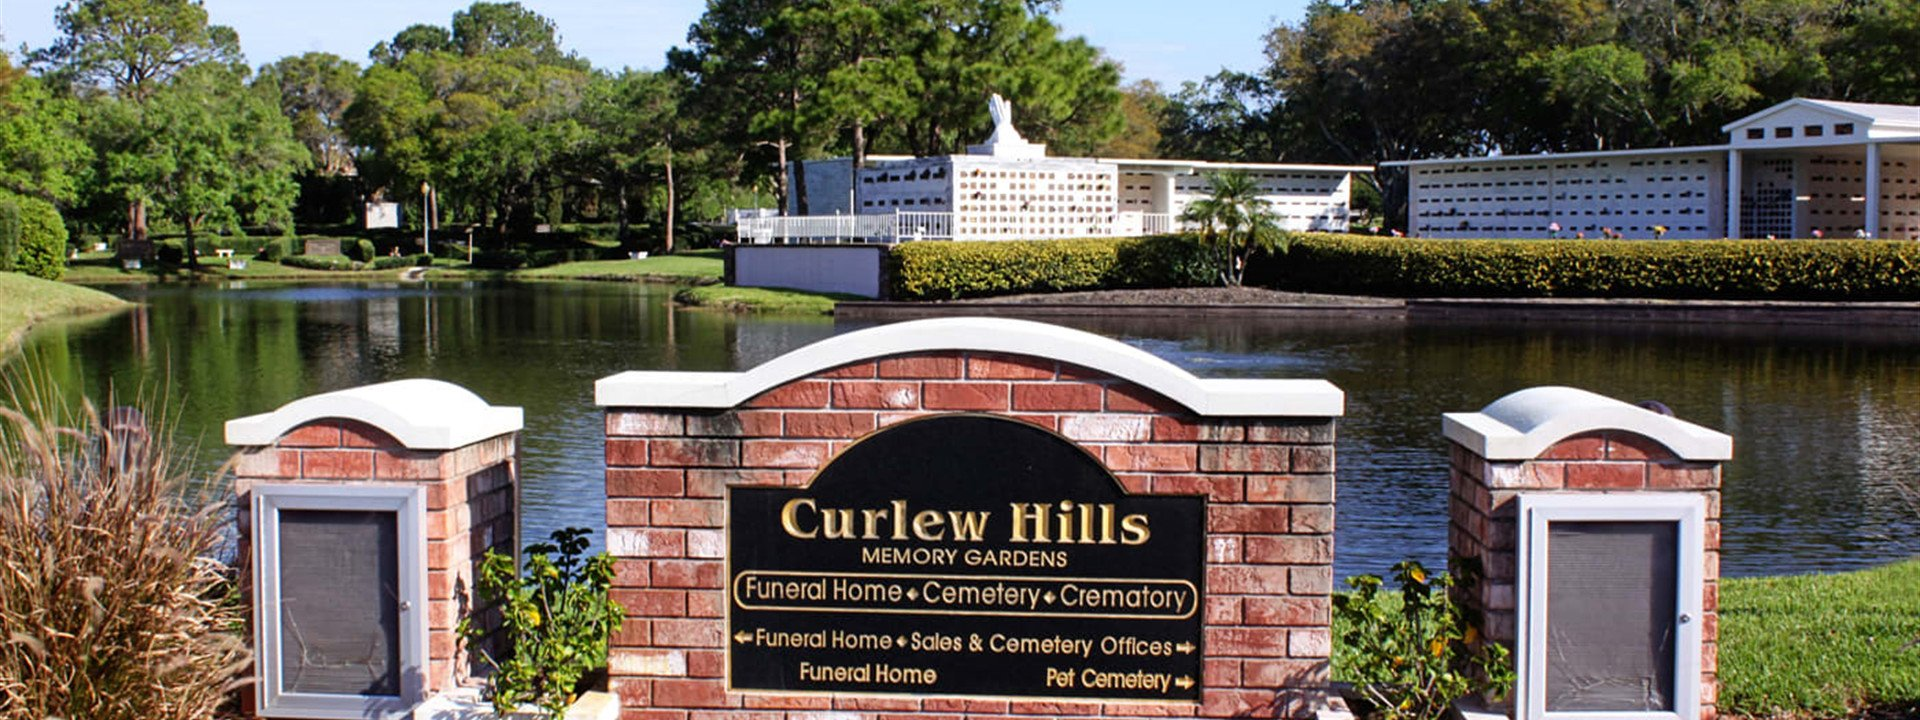 About Us | Curlew Hills Memory Gardens - Palm Harbor, FL